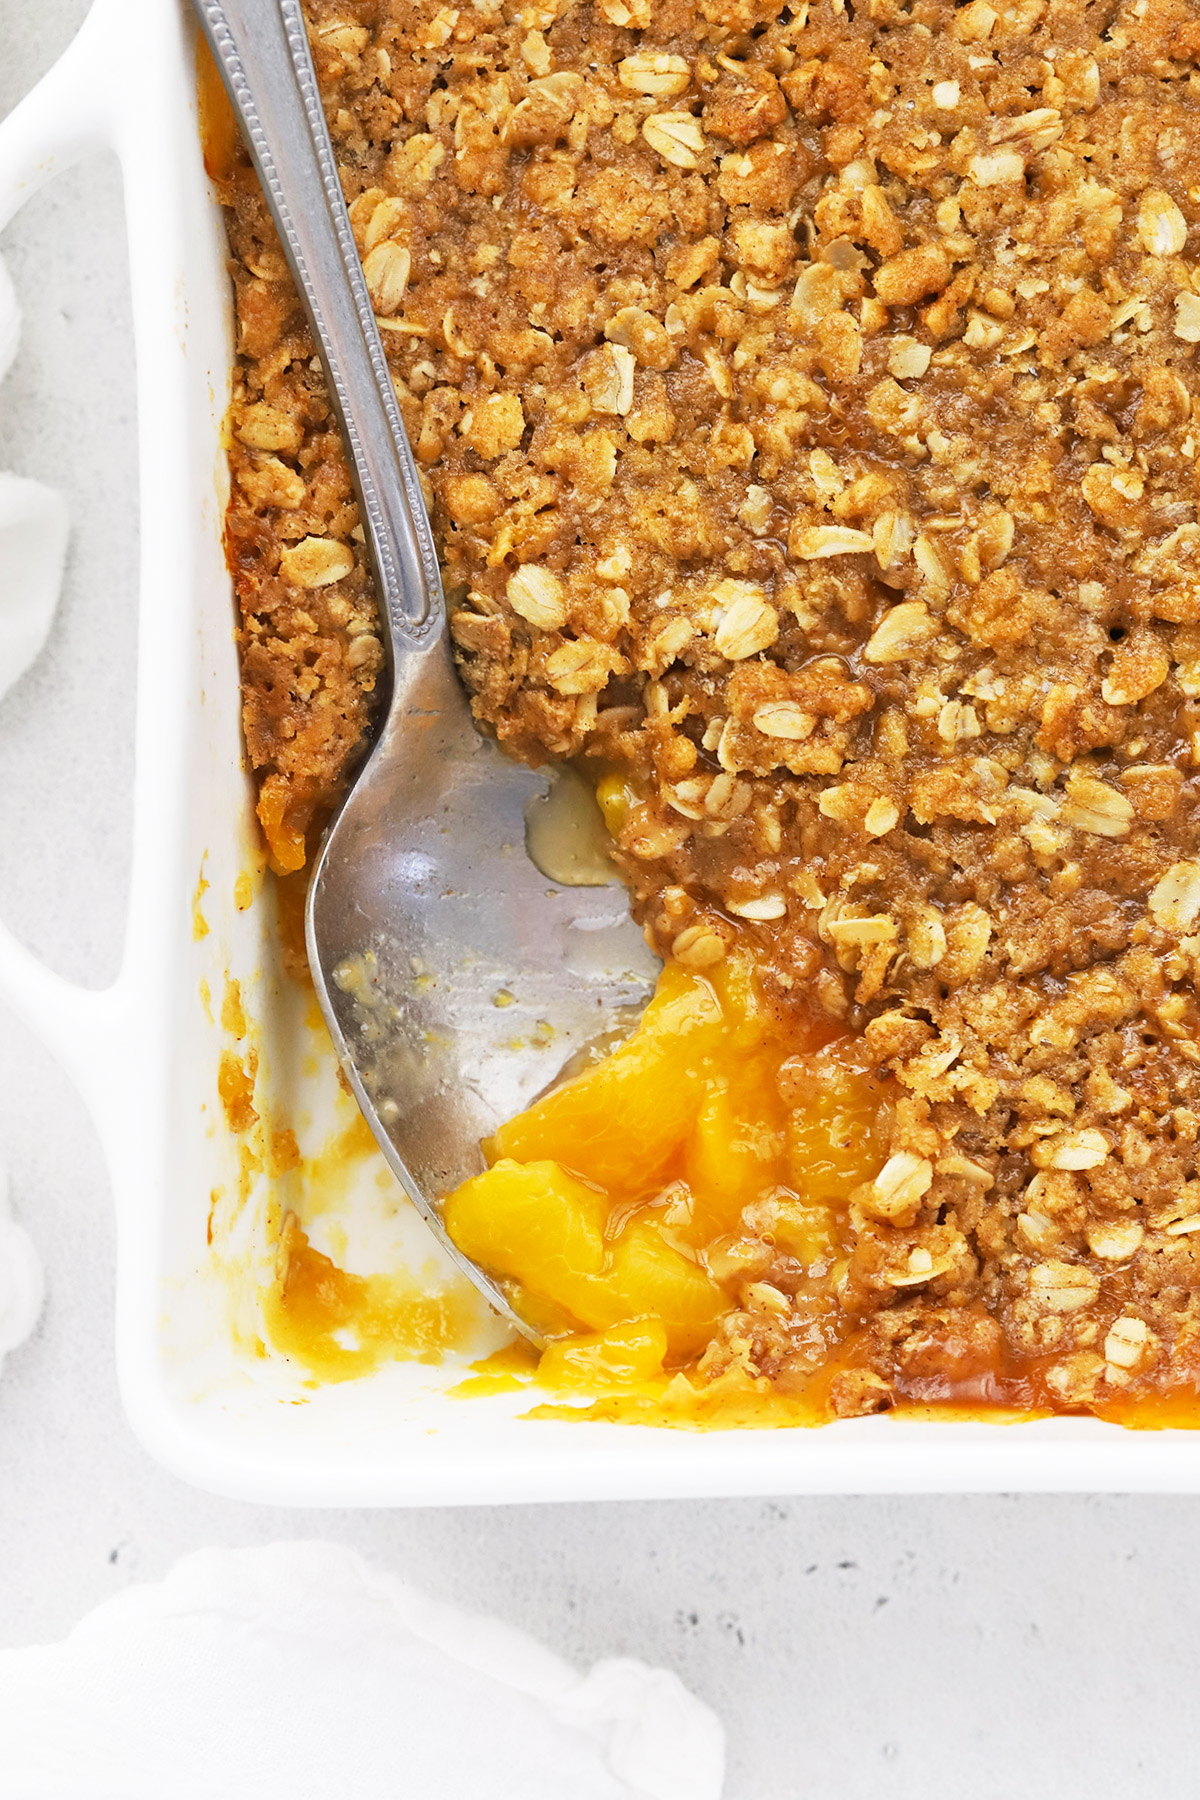 Overhead view of warm gluten-free peach crisp with a spoon in it, revealing colorful peach filling